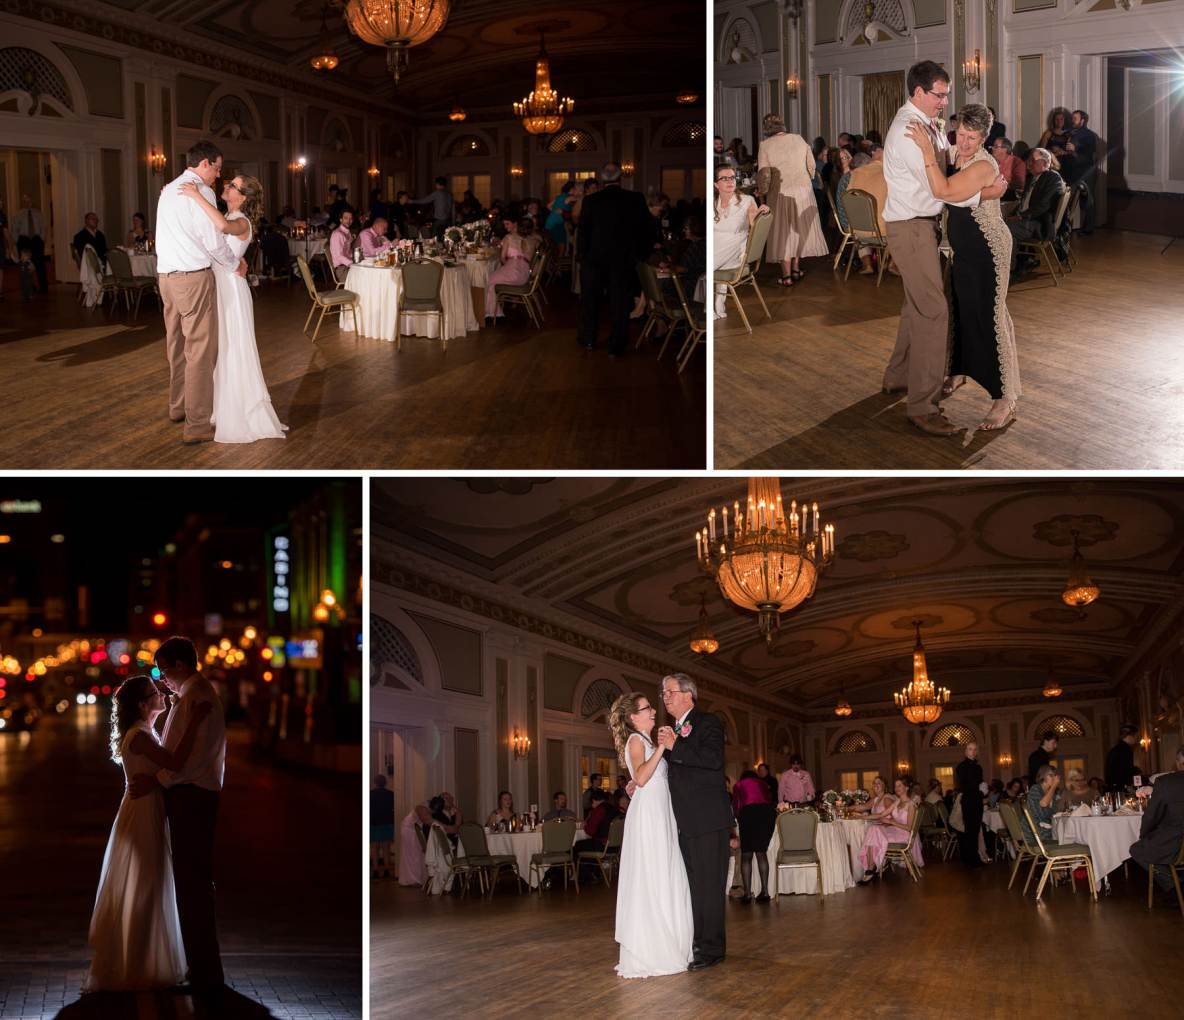 Photos of the indoor dance, and a shot of the couple outside on the streets of the city with lights in background.